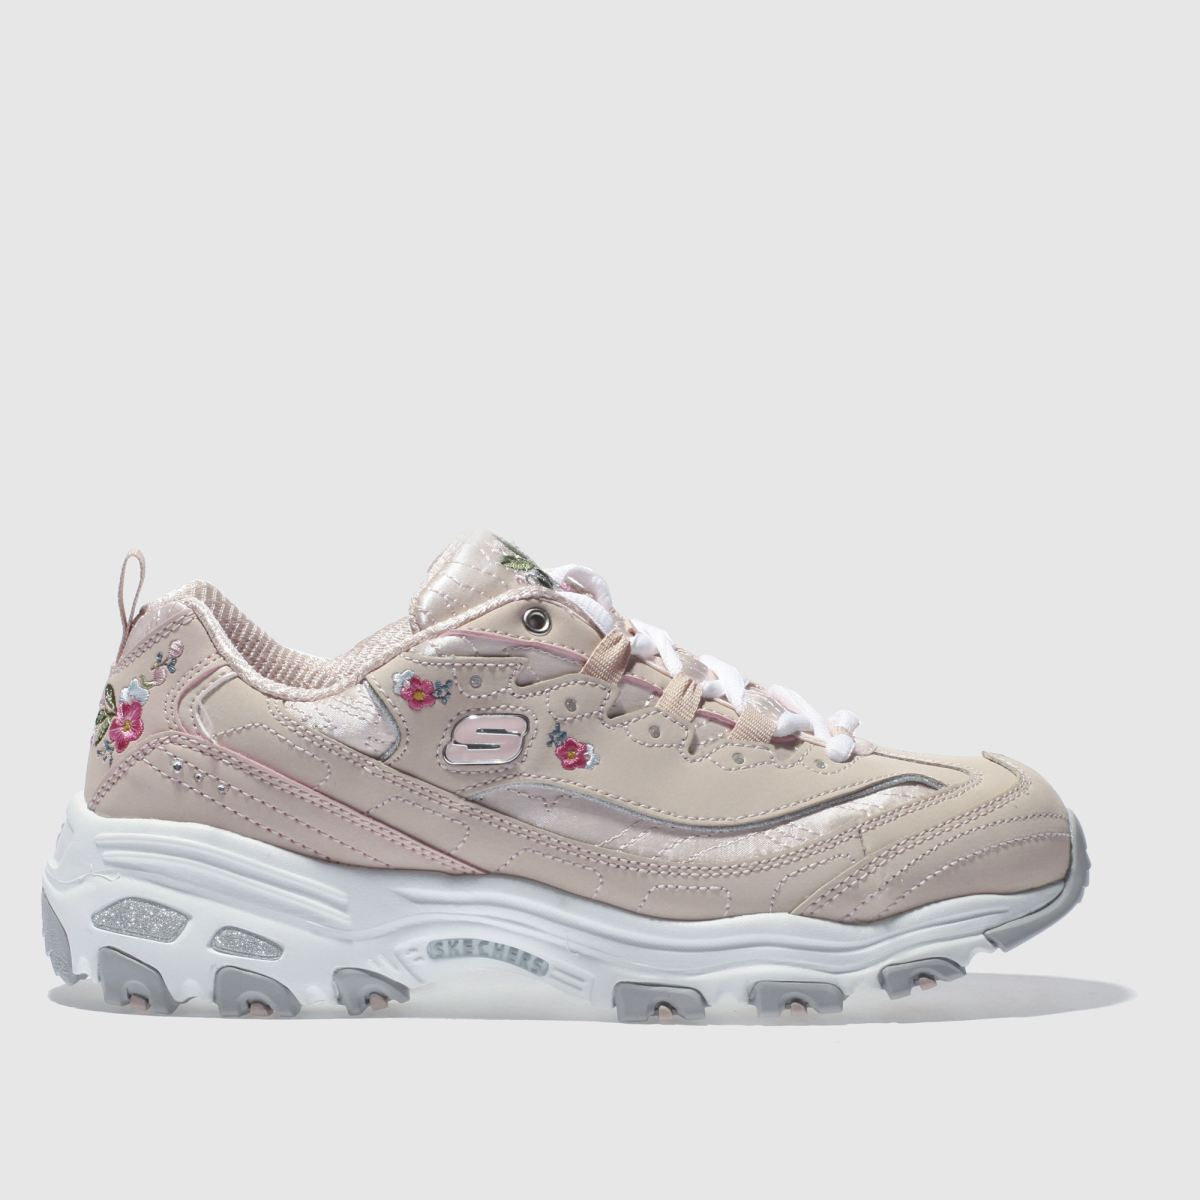 Skechers Skechers Pale Pink Dlites Bright Blossoms Trainers